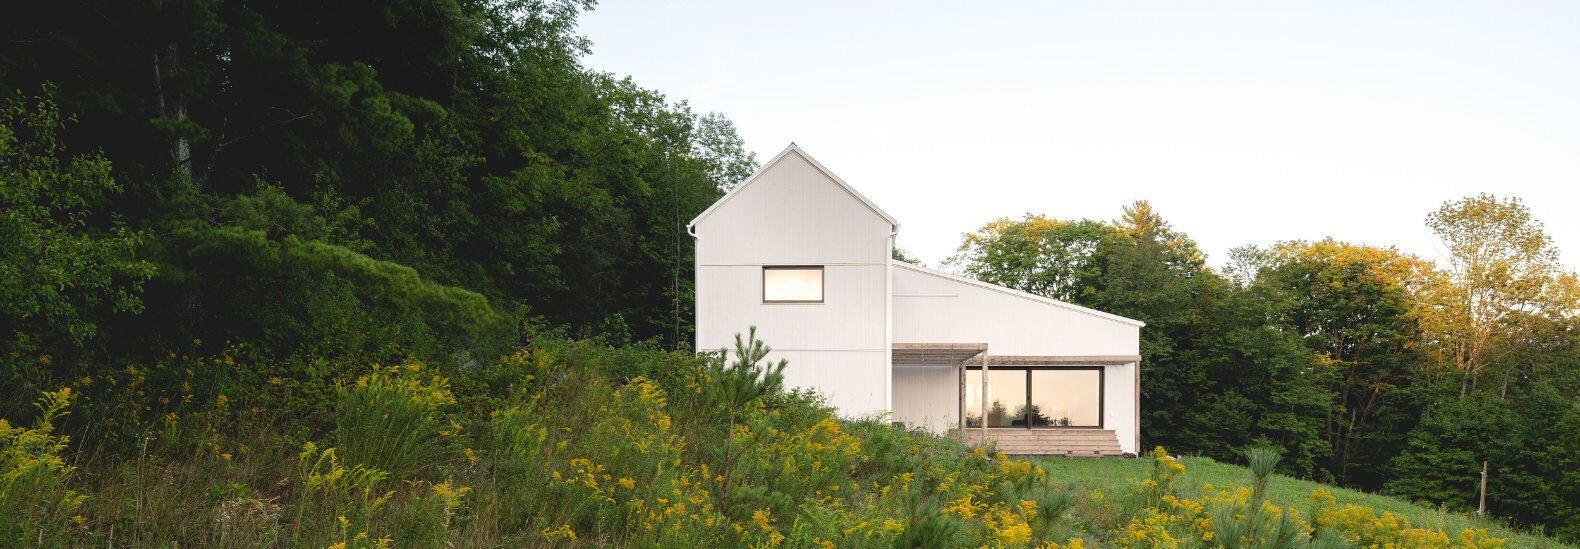 Explore the Saltbox Passive House's sweet sustainable design